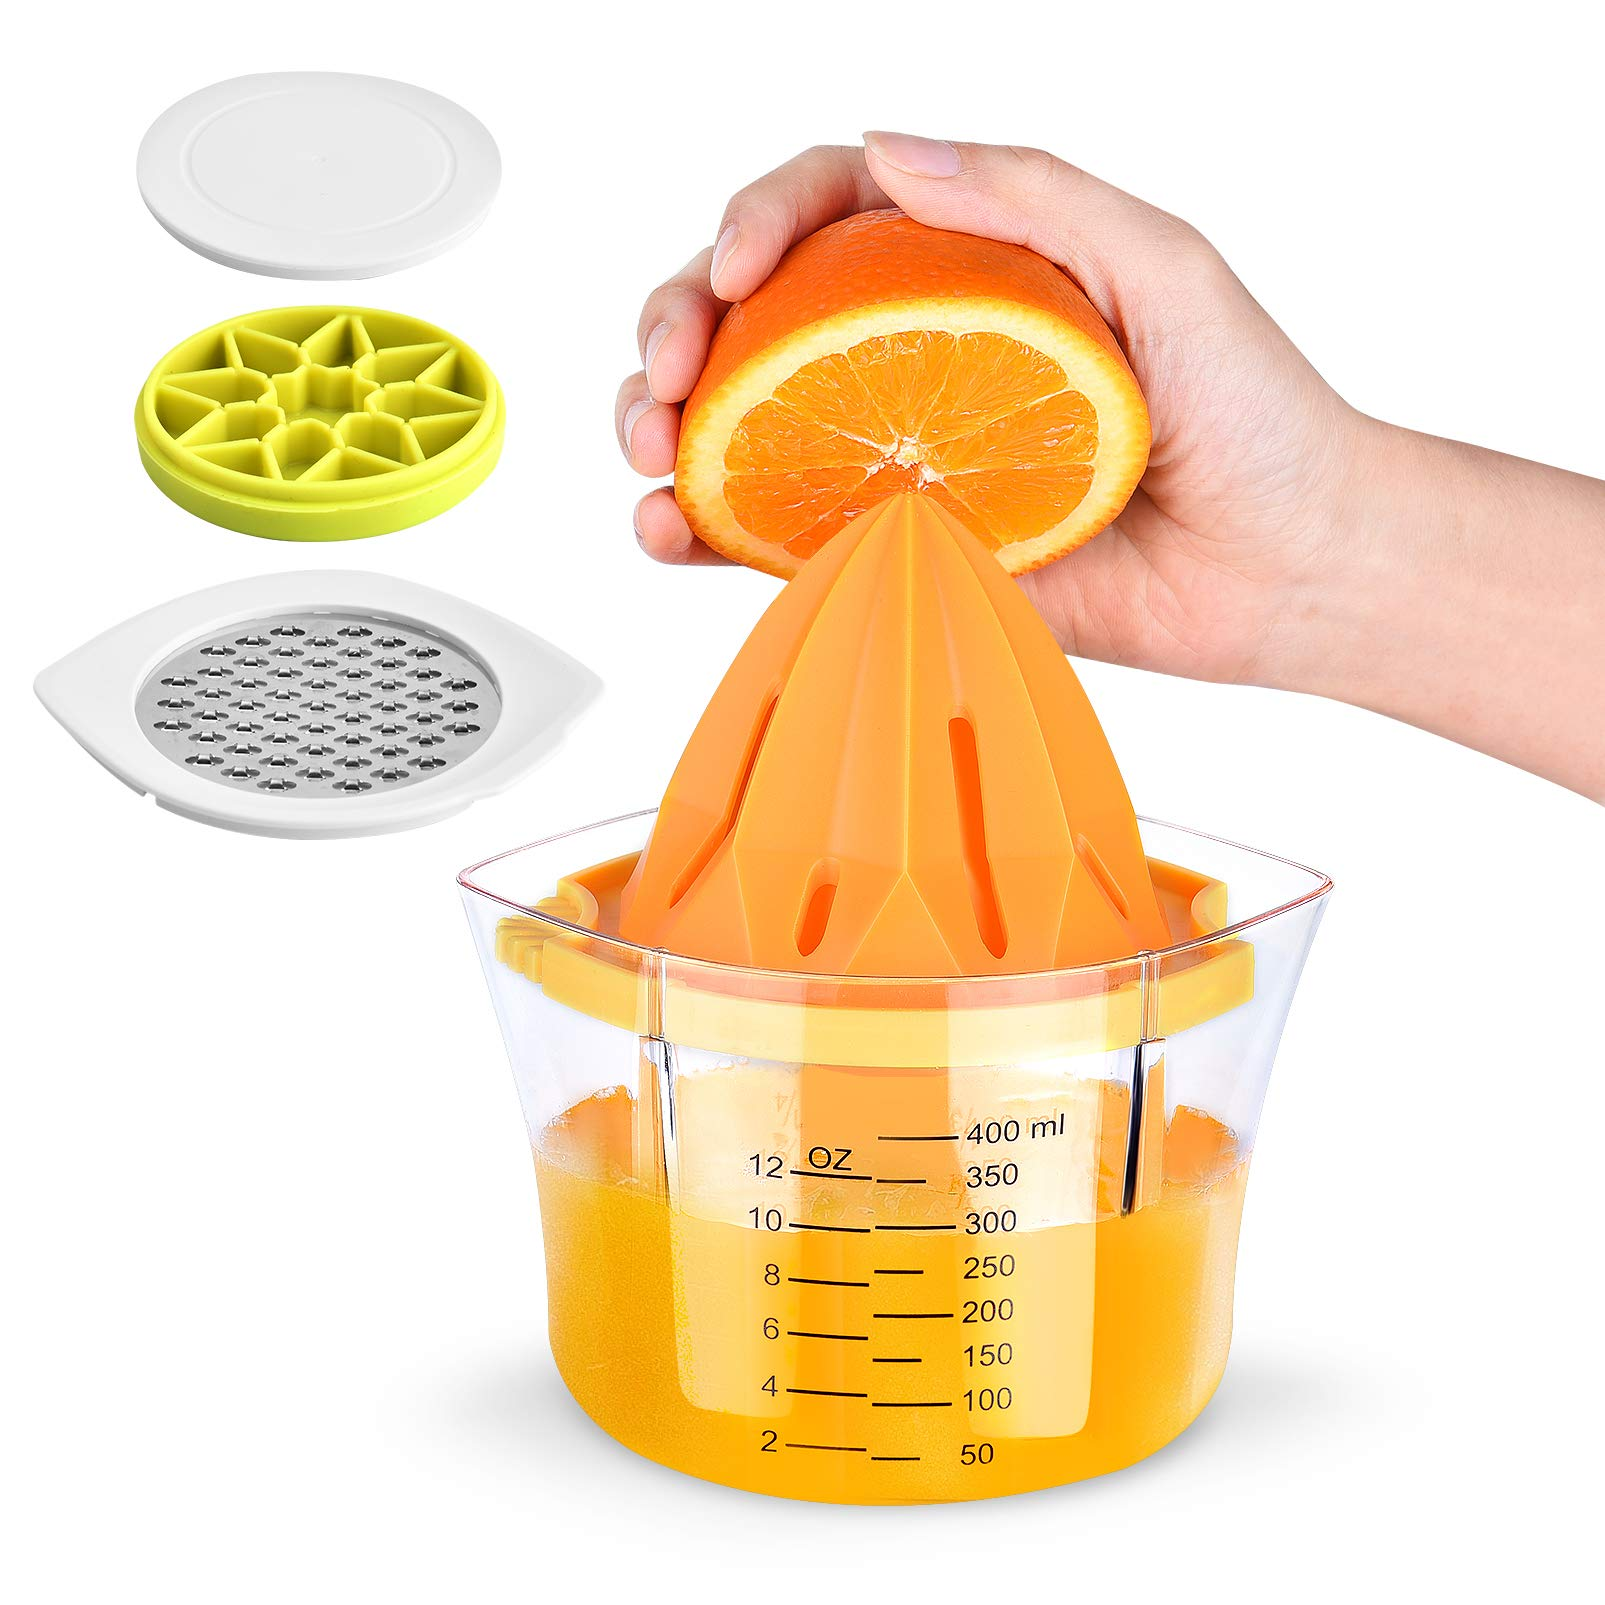 Lemon Squeezer Manual Juicer - Dual Anti-Slip Reamer Anti-corrosion Measuring Cup with Strainer & Grater & Ice Tray Orange Citrus Hand Press Juicer